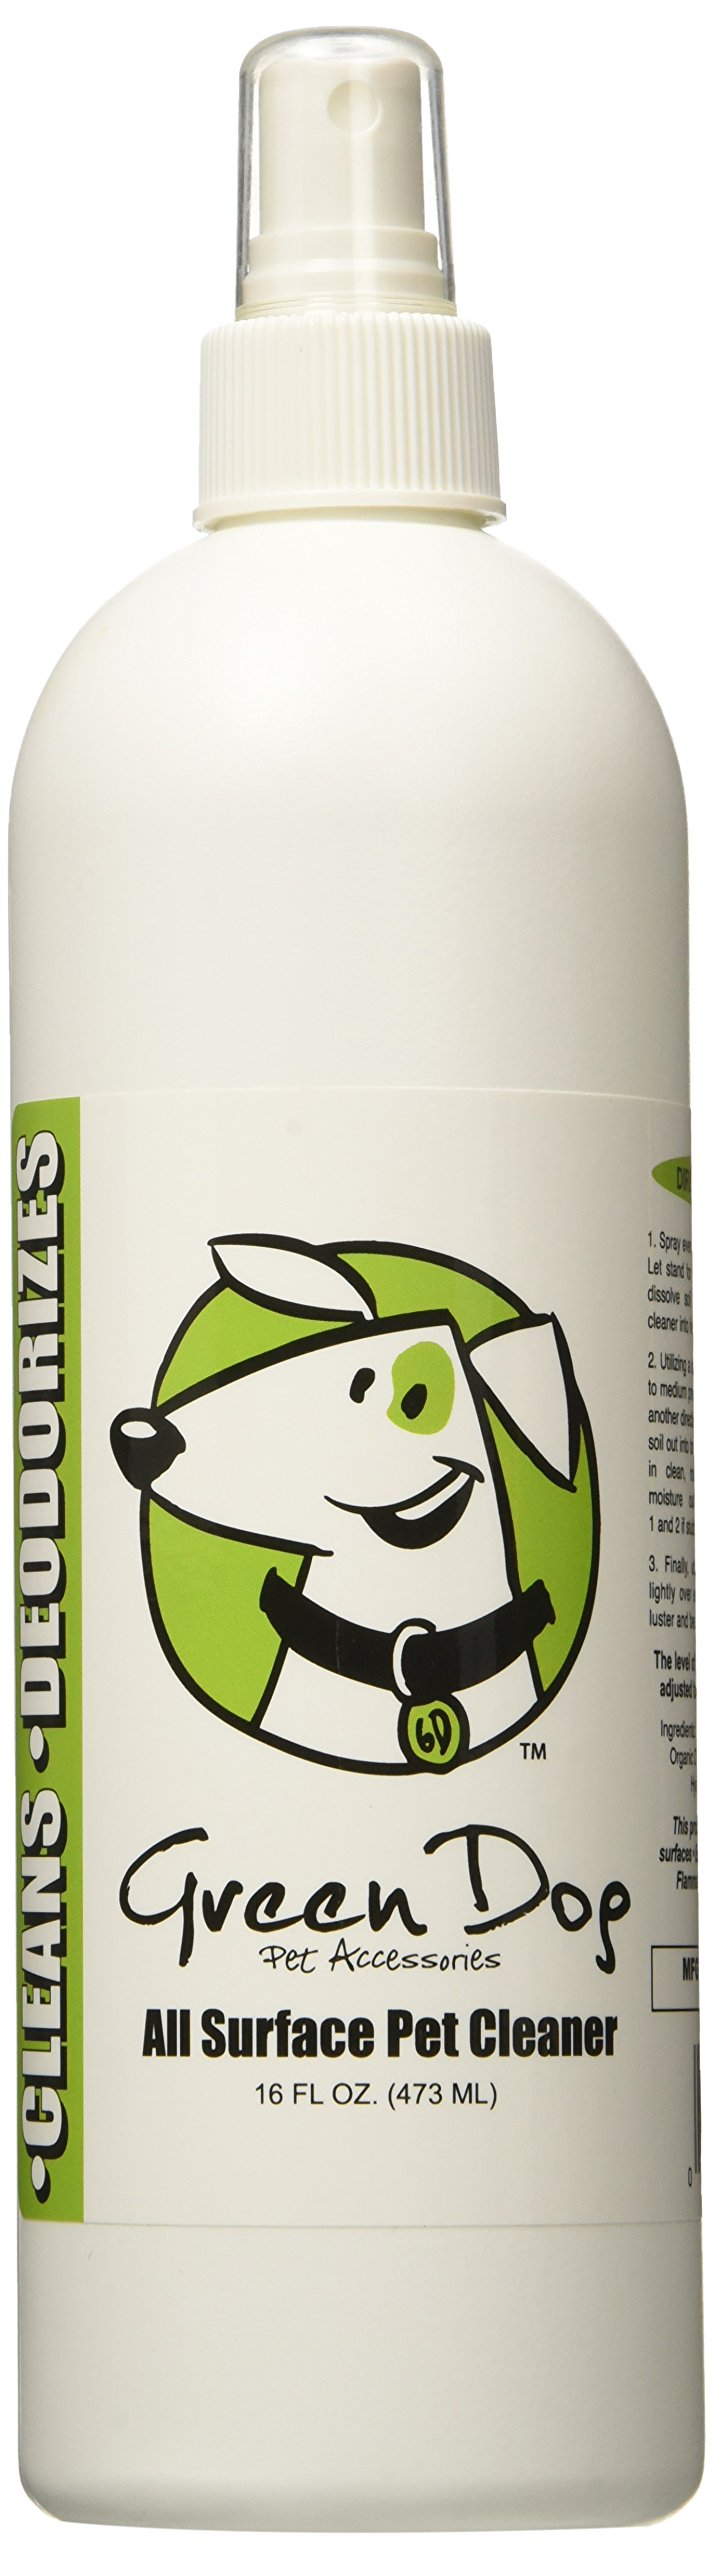 Green Dog All Surface Pet Cleaner, 16 oz